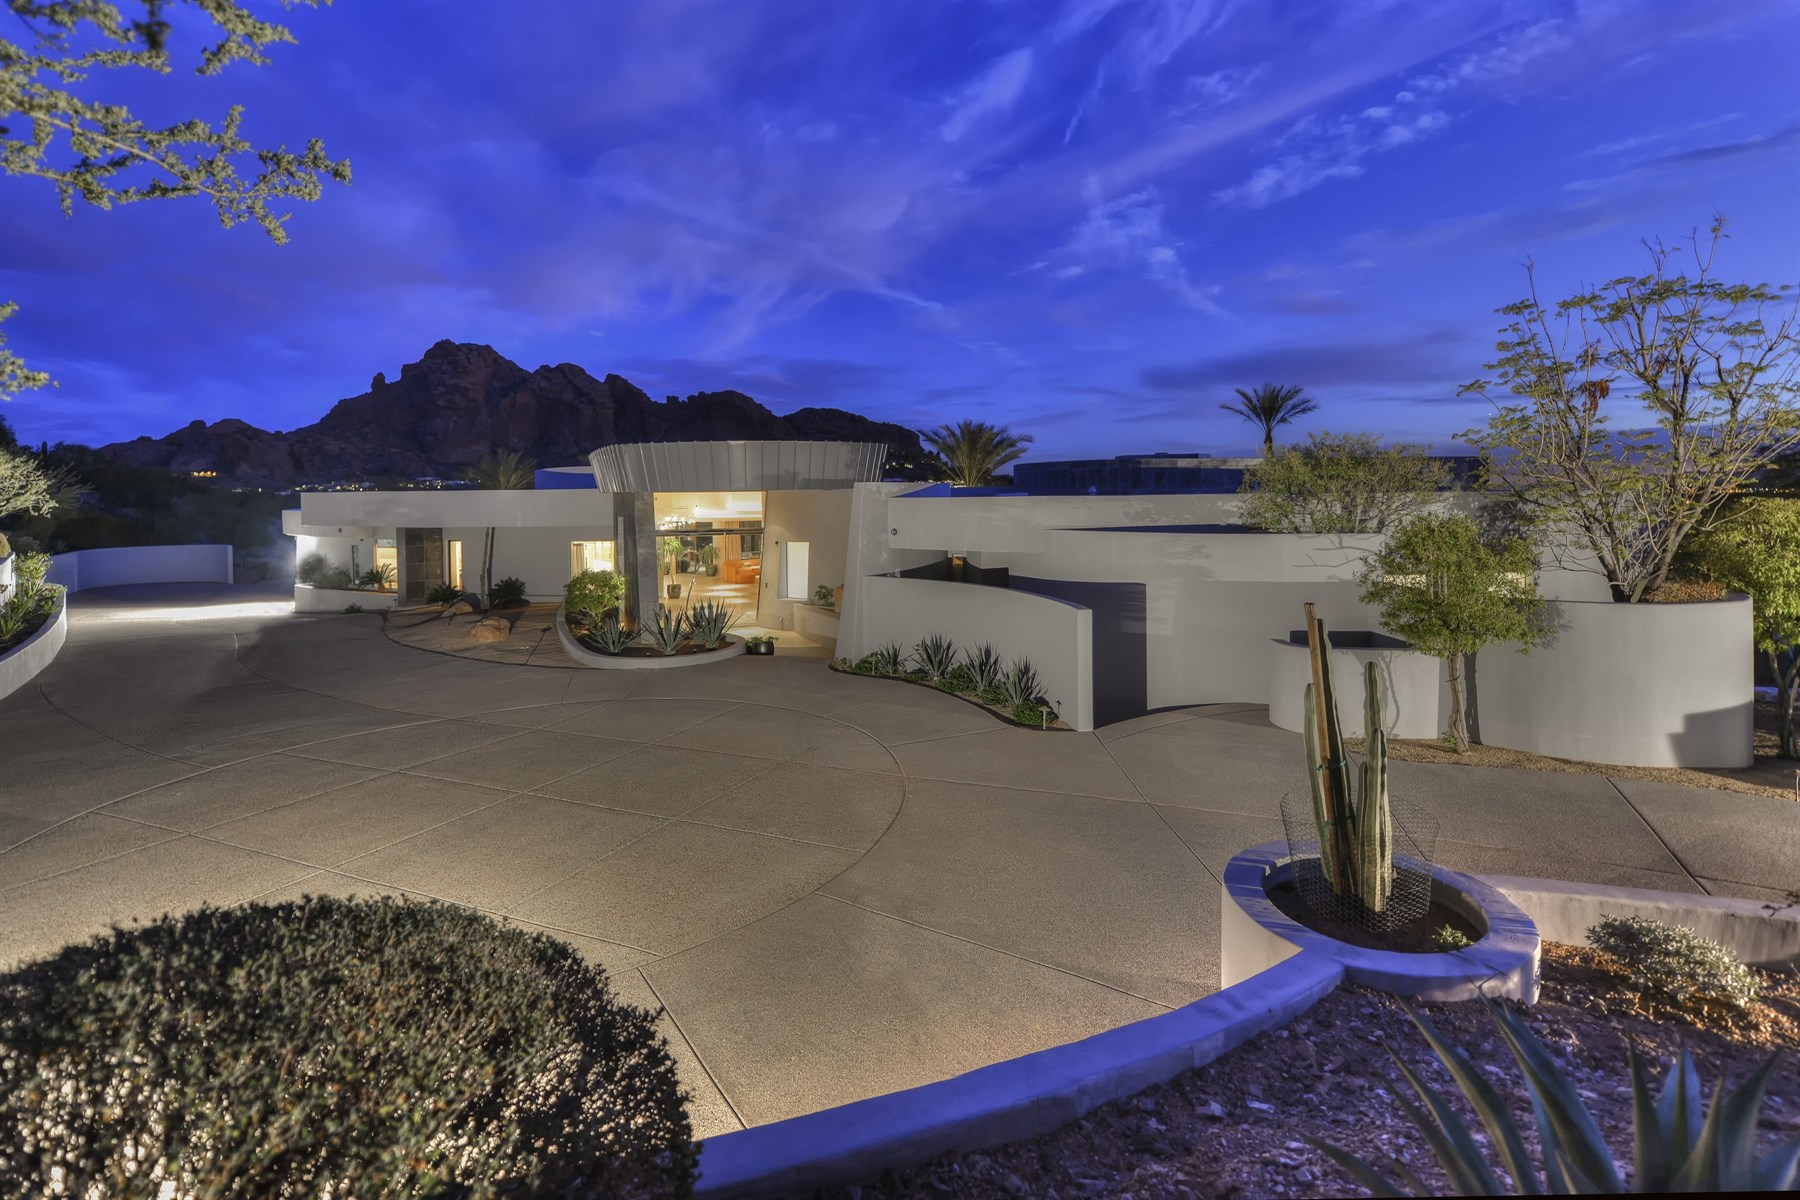 Casa para uma família para Venda às Breathtaking Custom Contemporary Includes Holistic Views Of The Praying Monk 6021 N 44th Street Paradise Valley, Arizona, 85253 Estados Unidos